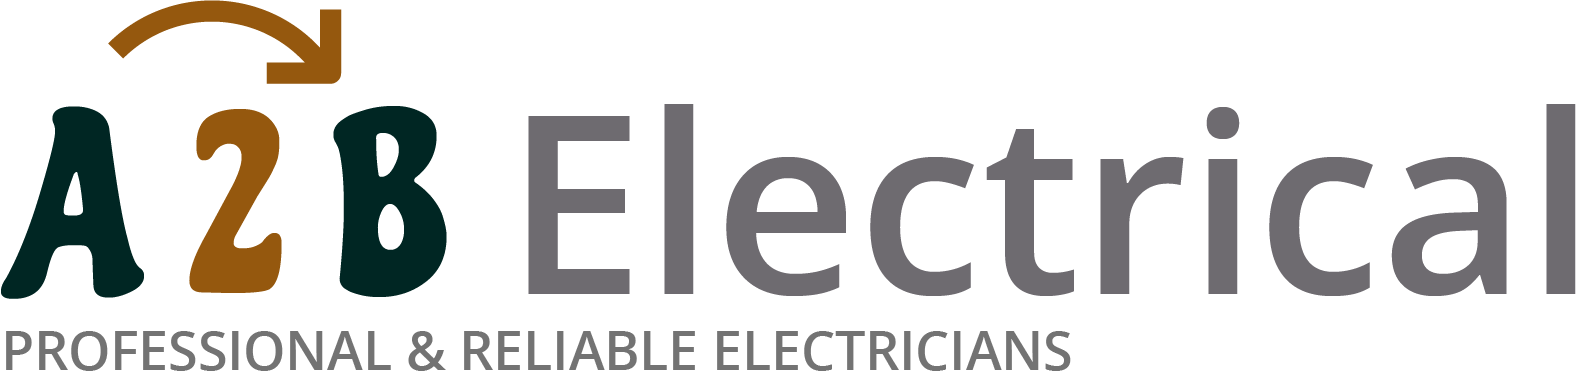 If you have electrical wiring problems in Sidcup, we can provide an electrician to have a look for you.